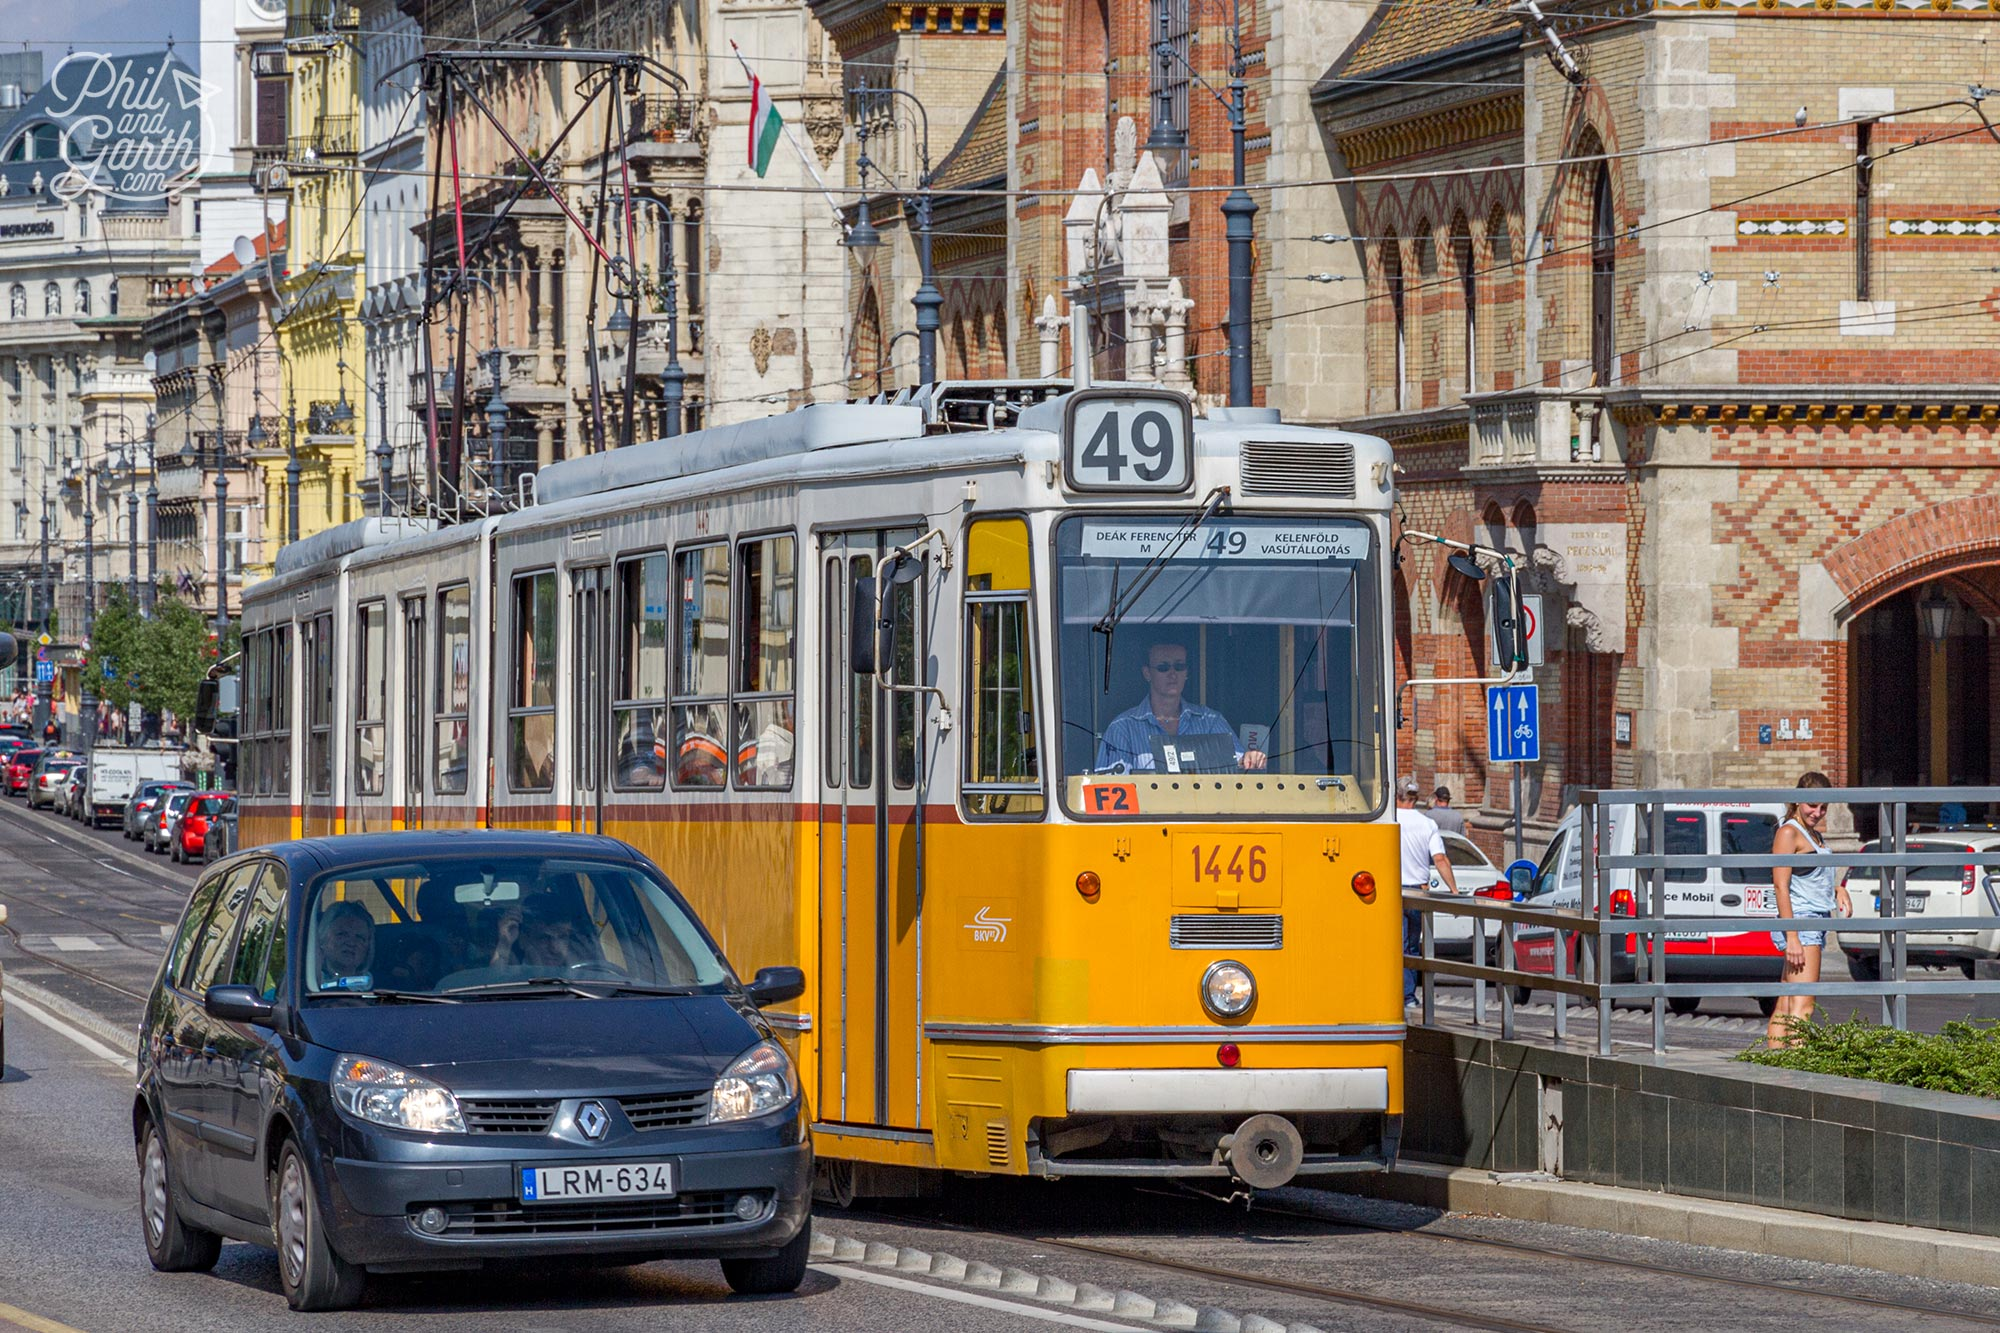 Budapest also has lots of trams to get around the city